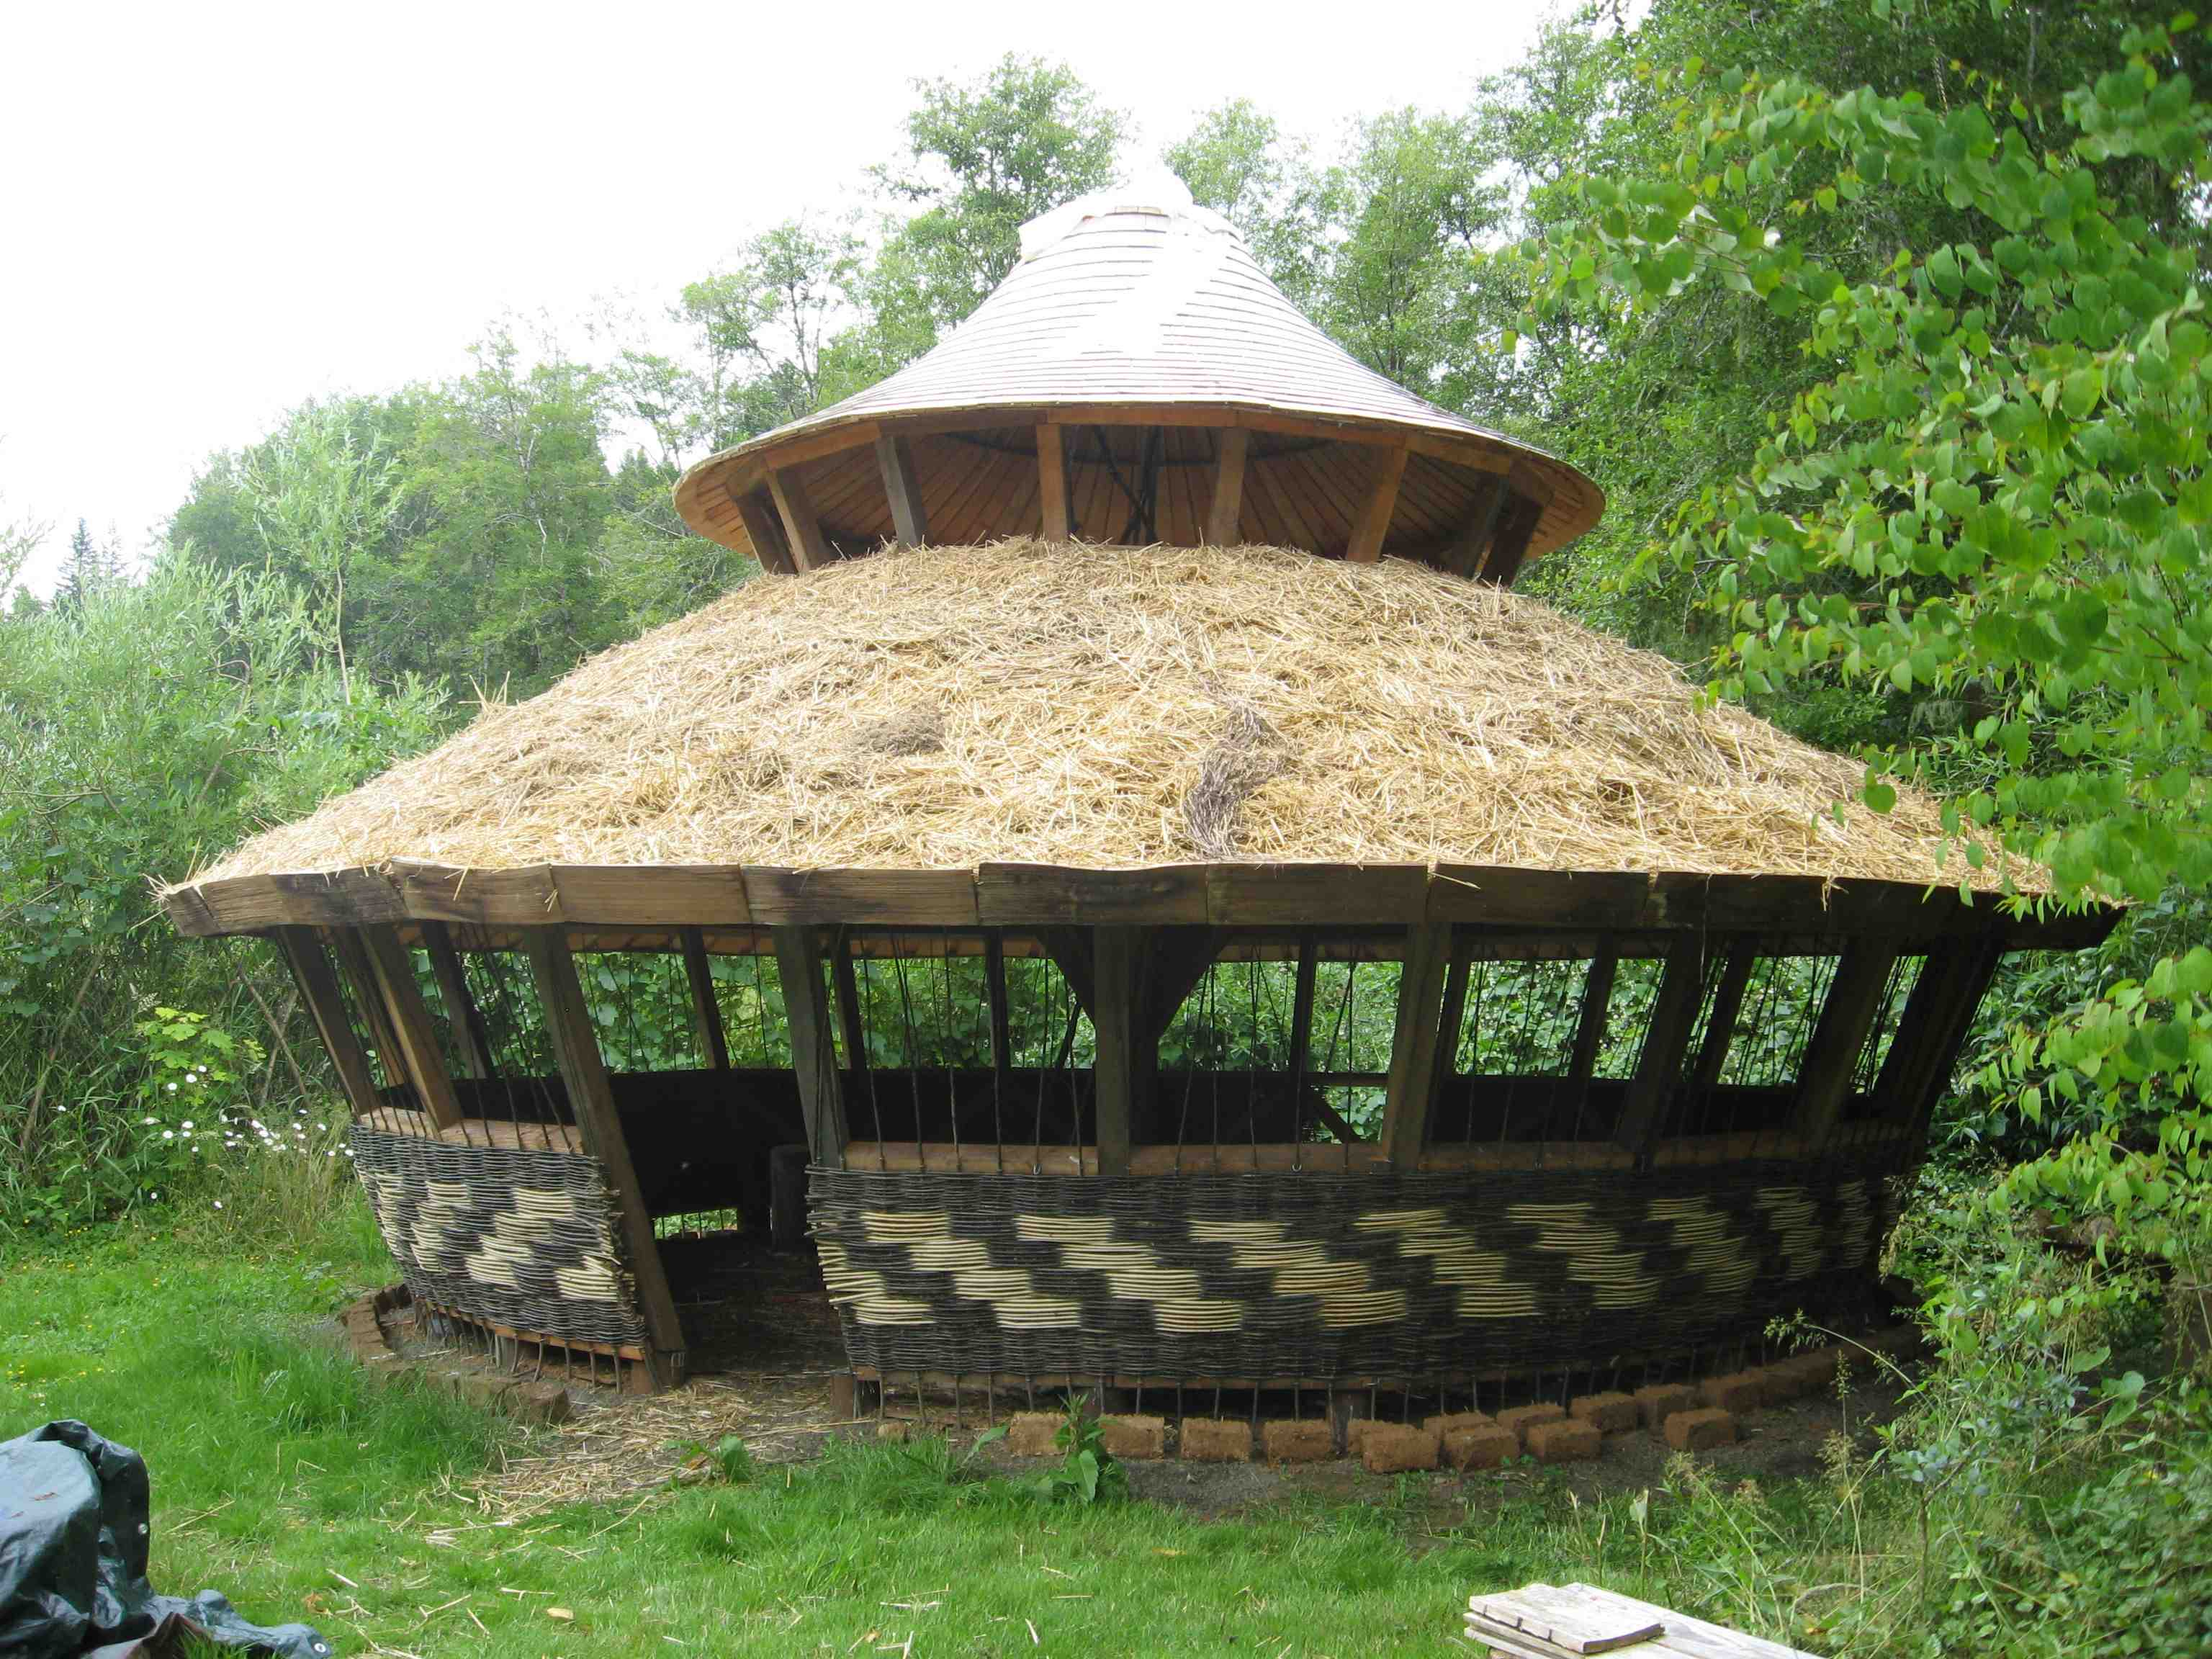 Concentric yurt houses plans designs Yurt house plans